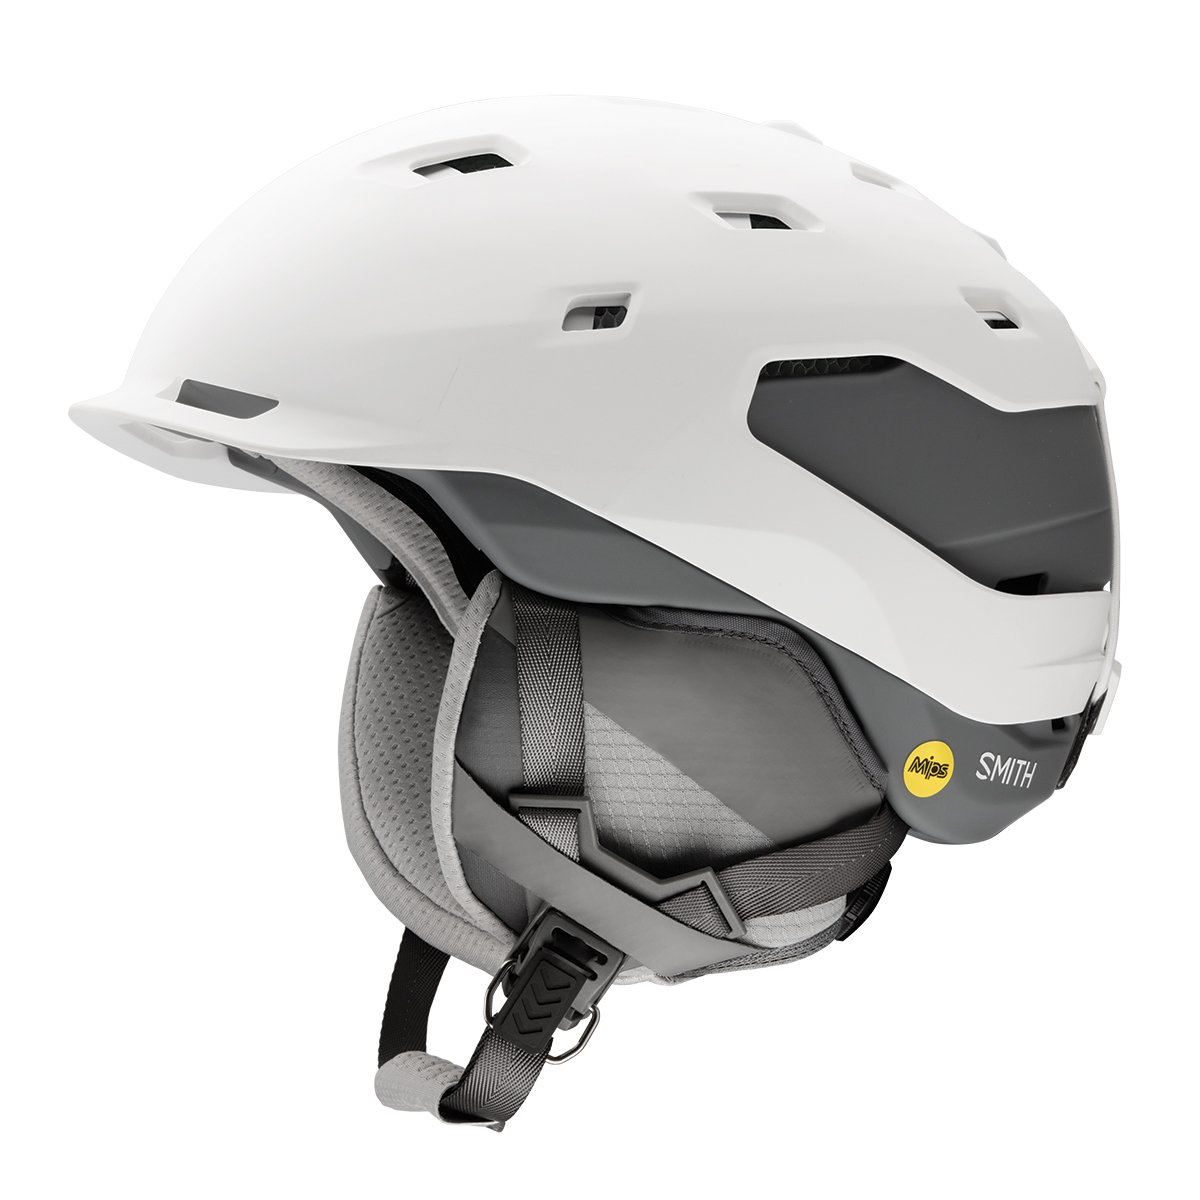 Smith Quantum Mips Snow Helmet - Matte White / Charcoal (Small) by Smith Optics